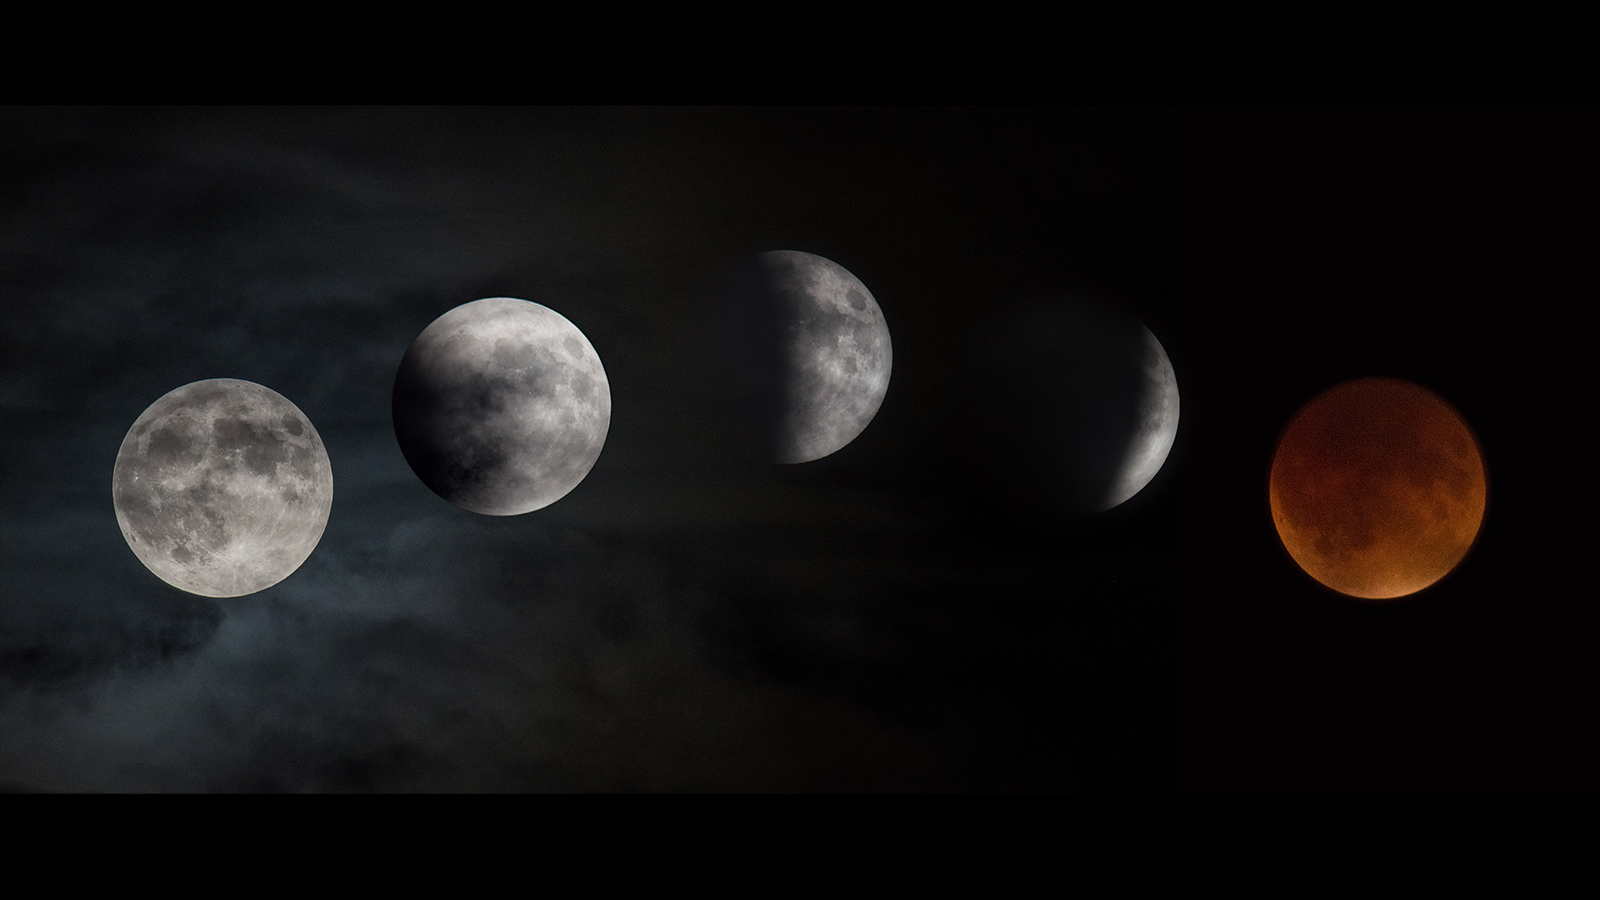 How to Watch the Only Total Lunar Eclipse of 2019, Plus a Supermoon -  Teachable Moments   NASA JPL Edu 88bed0a6a1